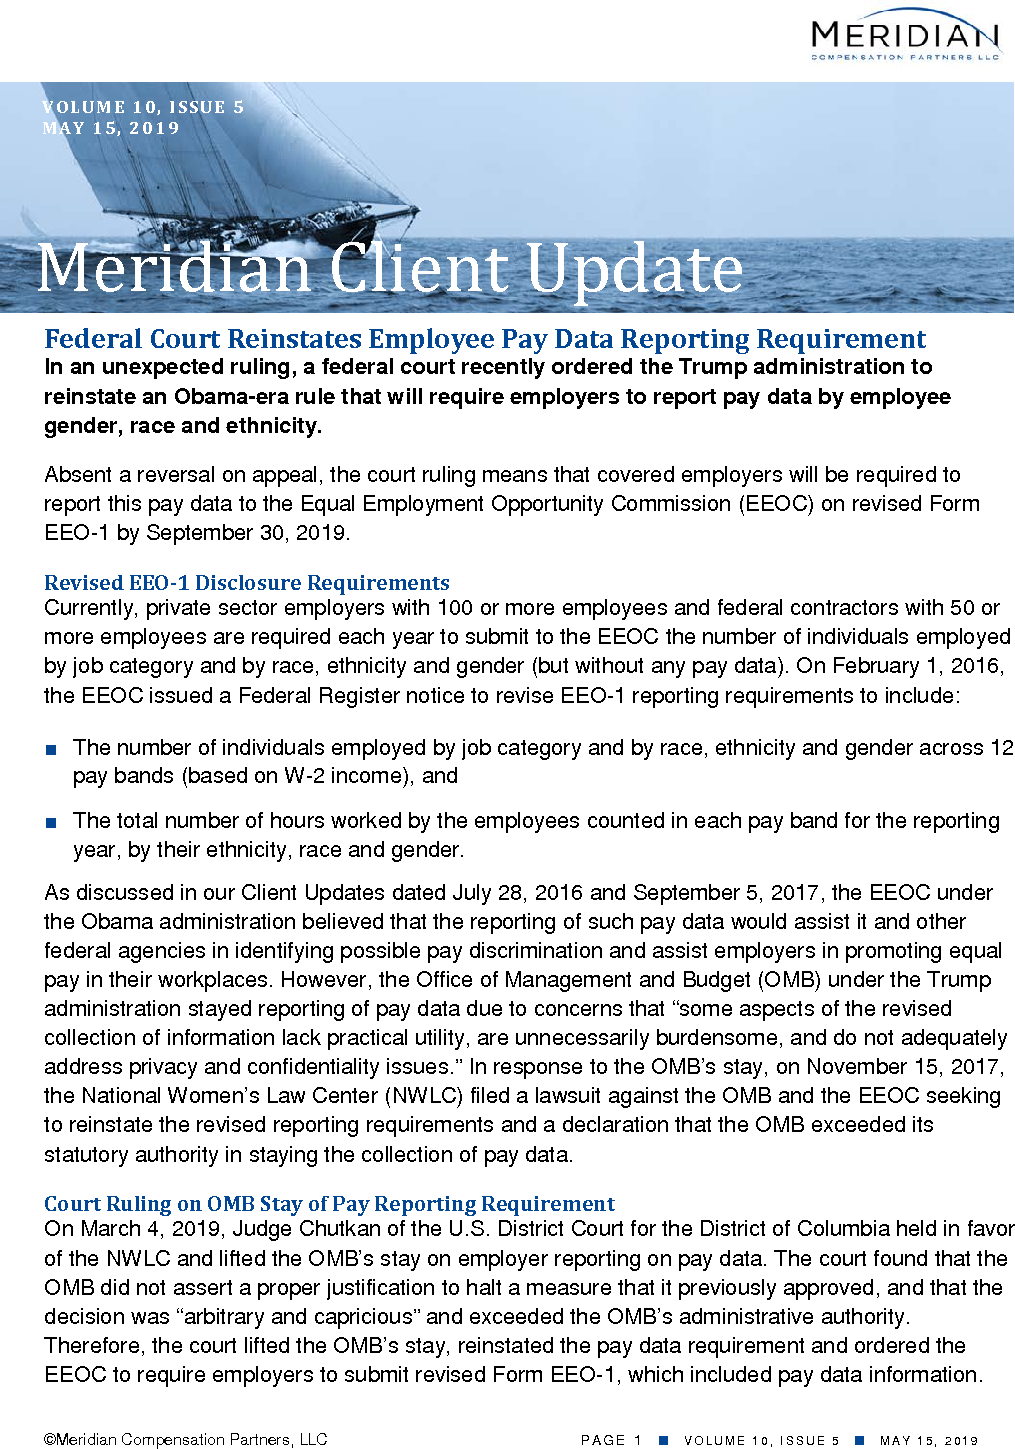 Federal Court Reinstates Employee Pay Data Reporting Requirement (PDF)